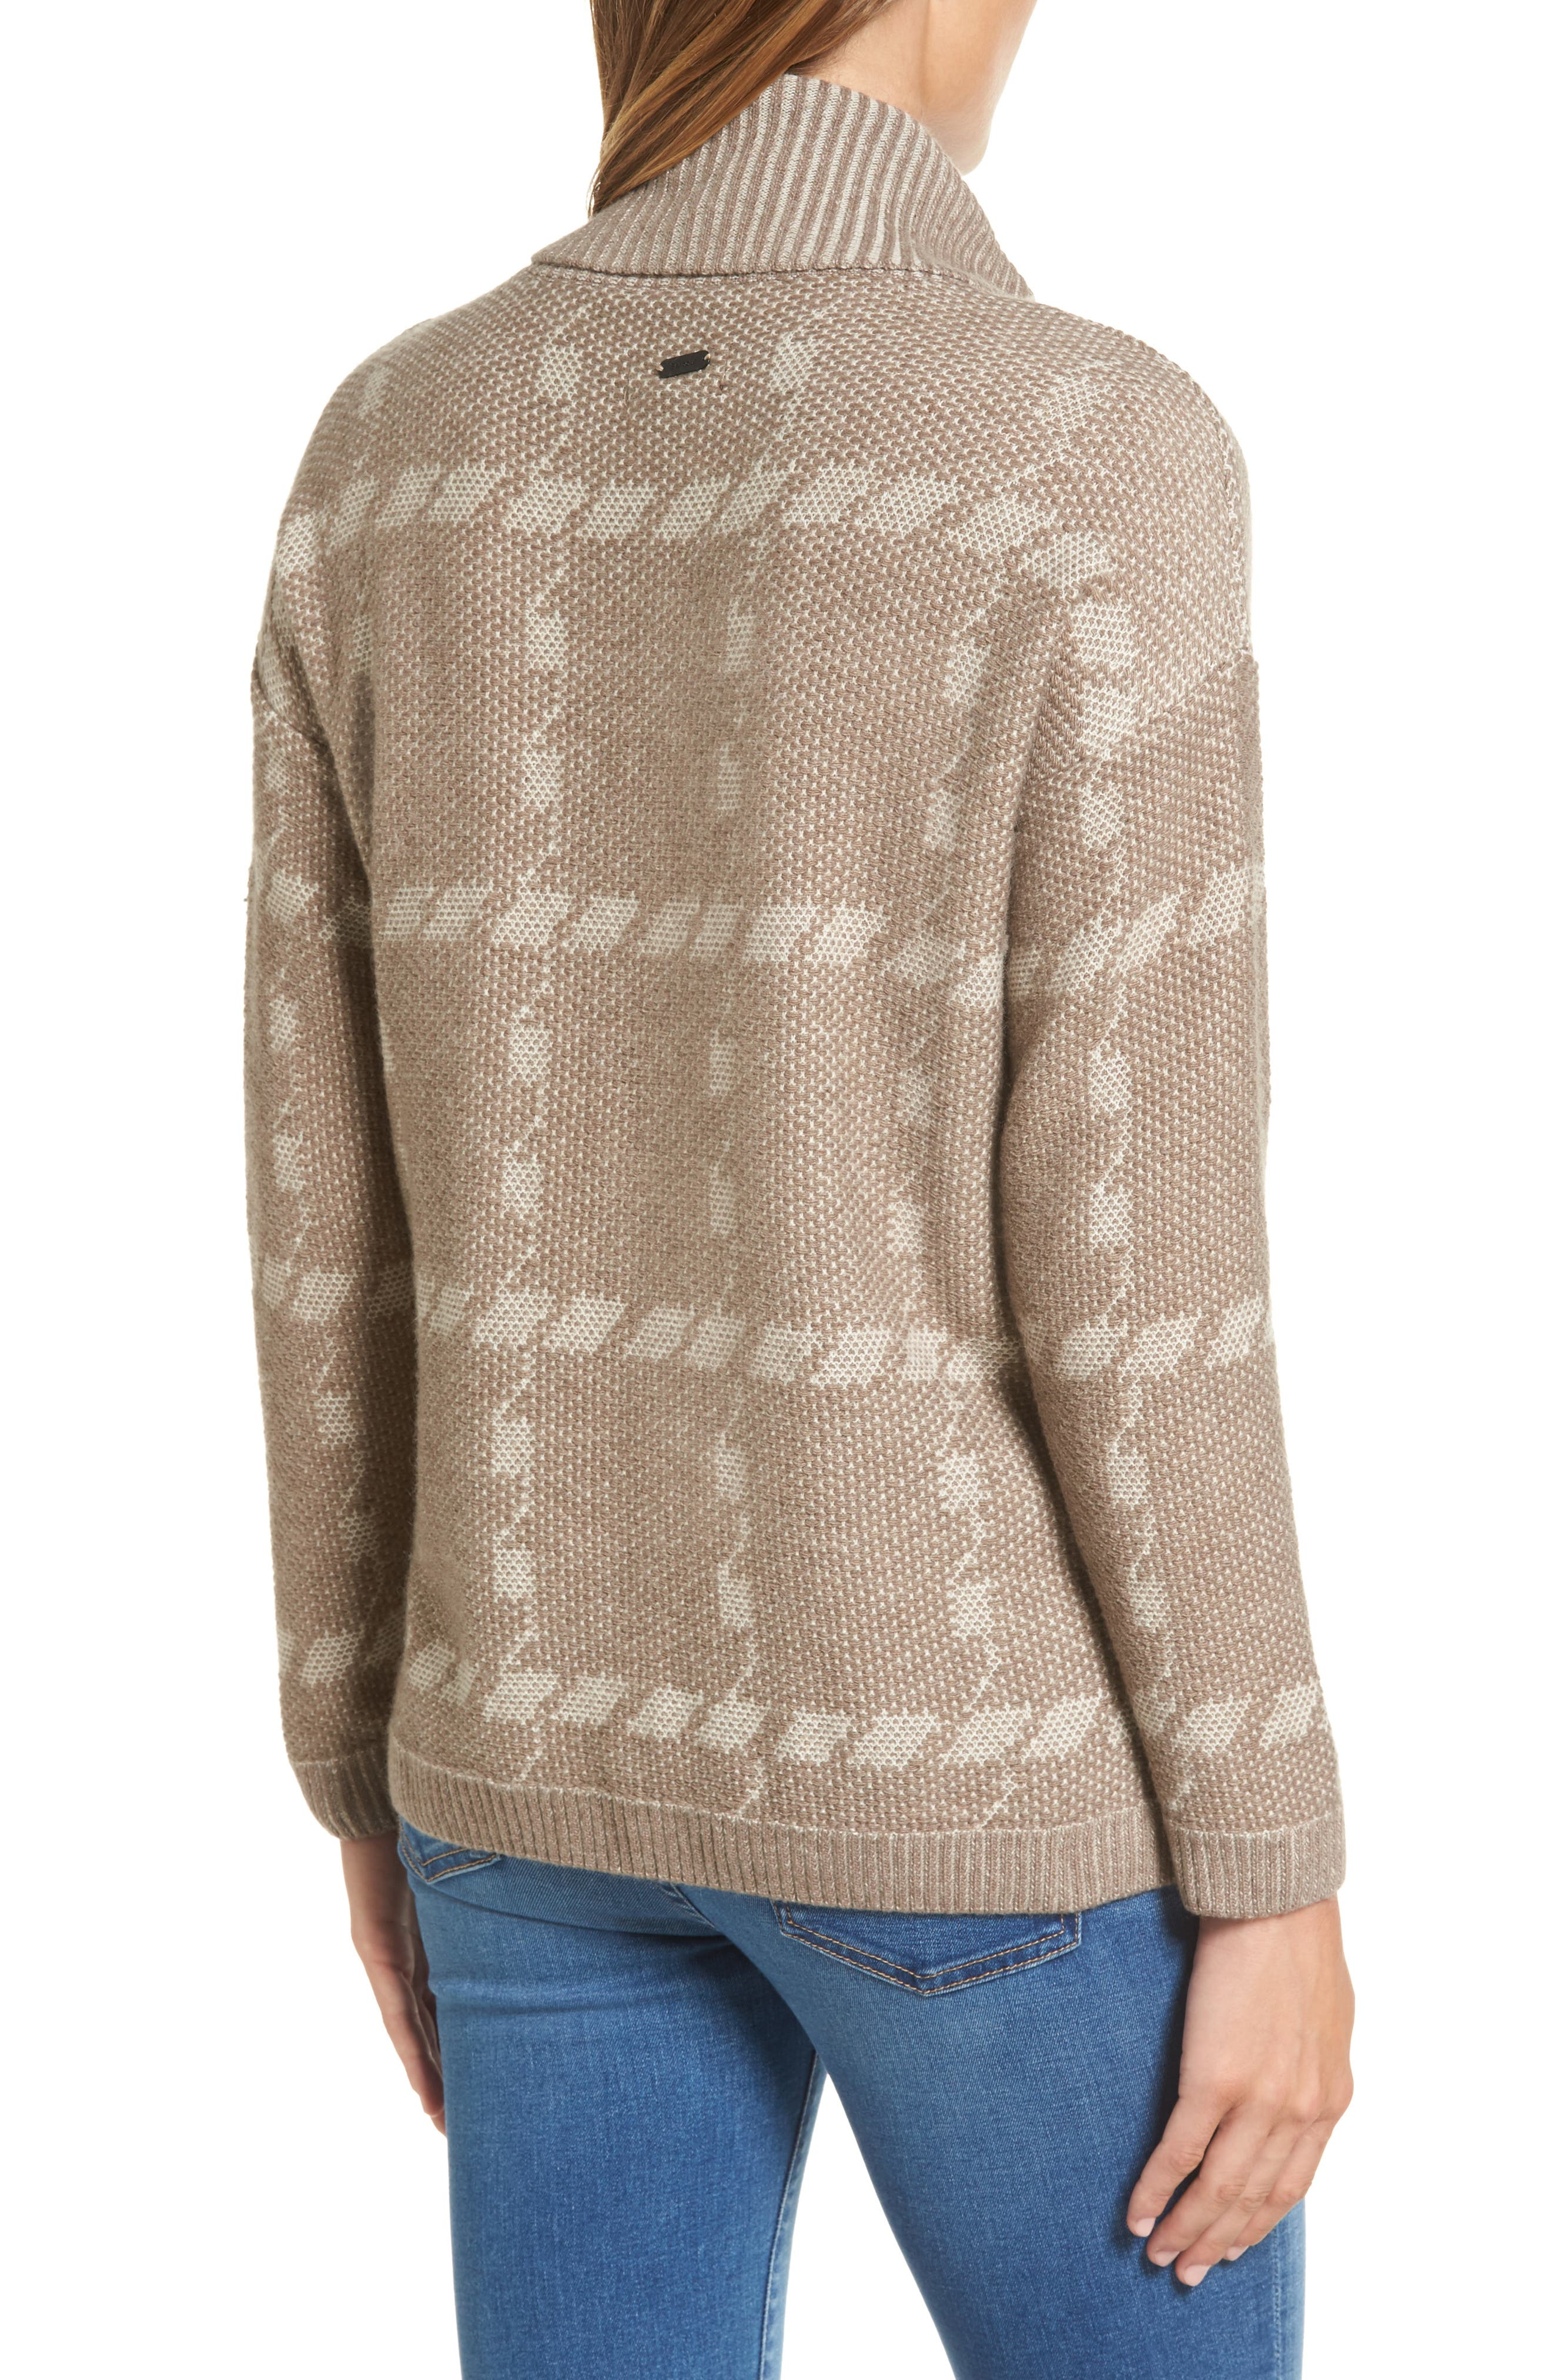 Glen Knit Merino Wool Blend Turtleneck Sweater,                             Alternate thumbnail 2, color,                             Taupe